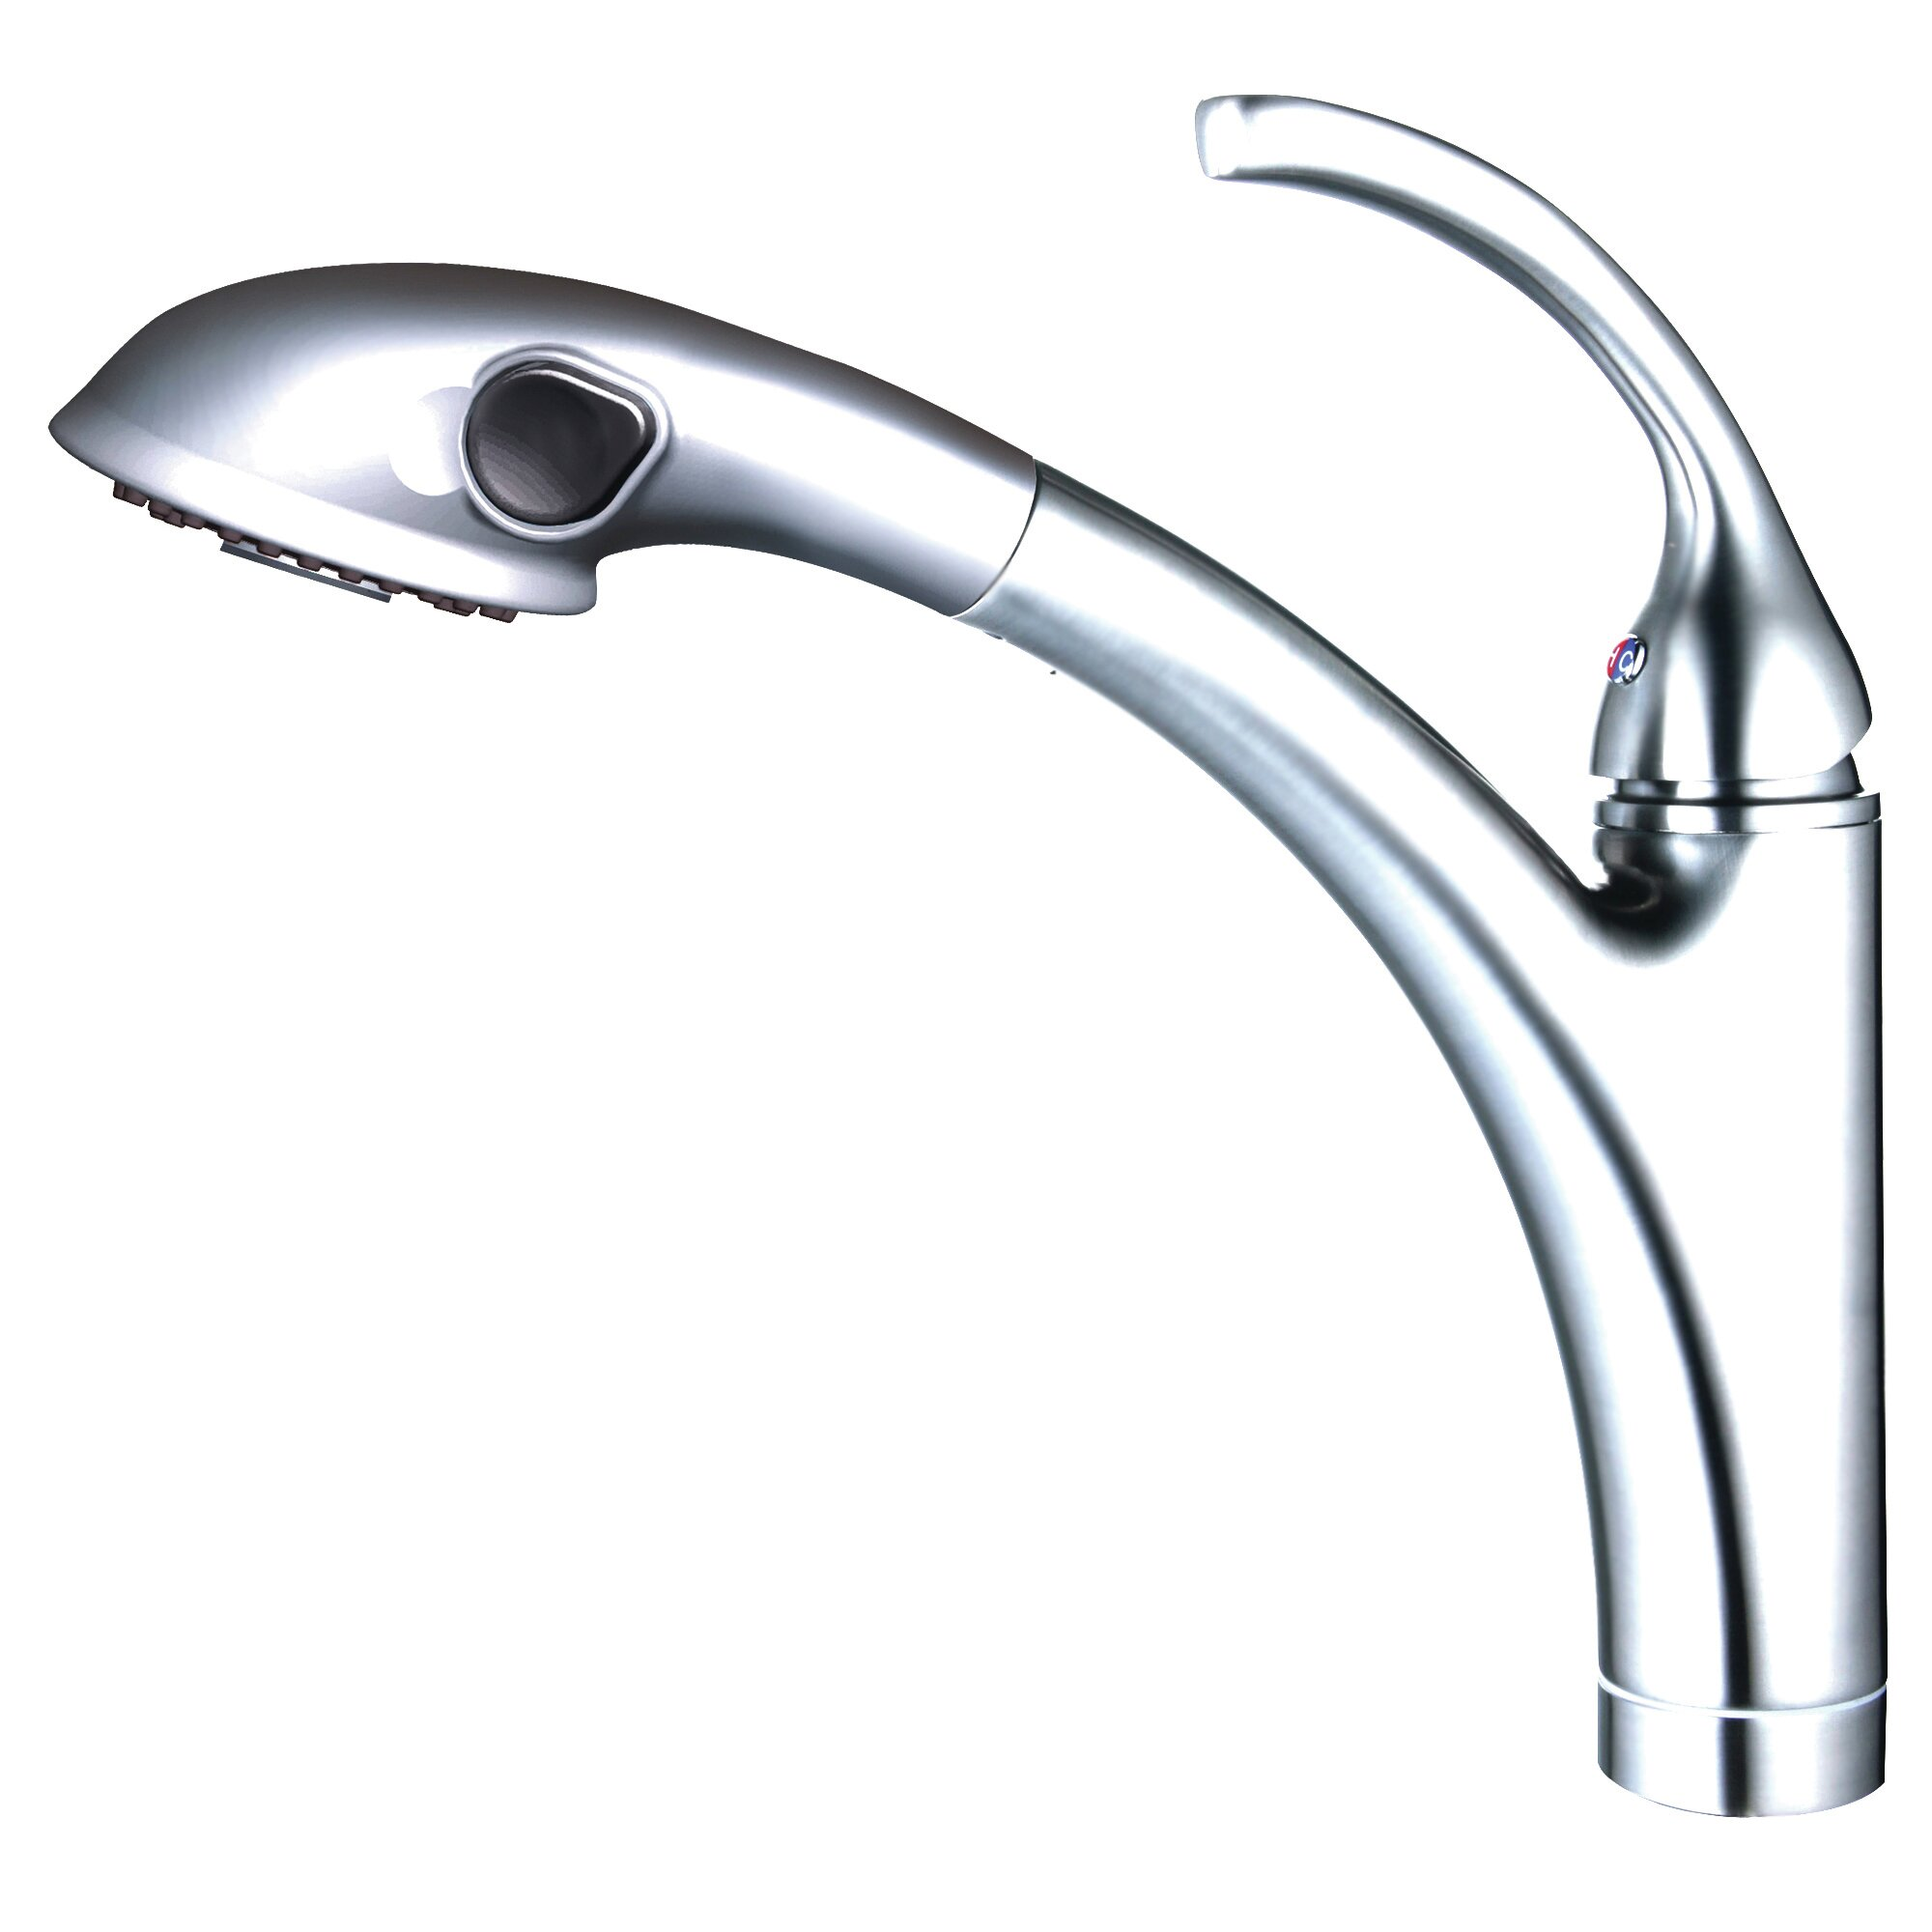 yosemite home decor single handle kitchen faucet with pull